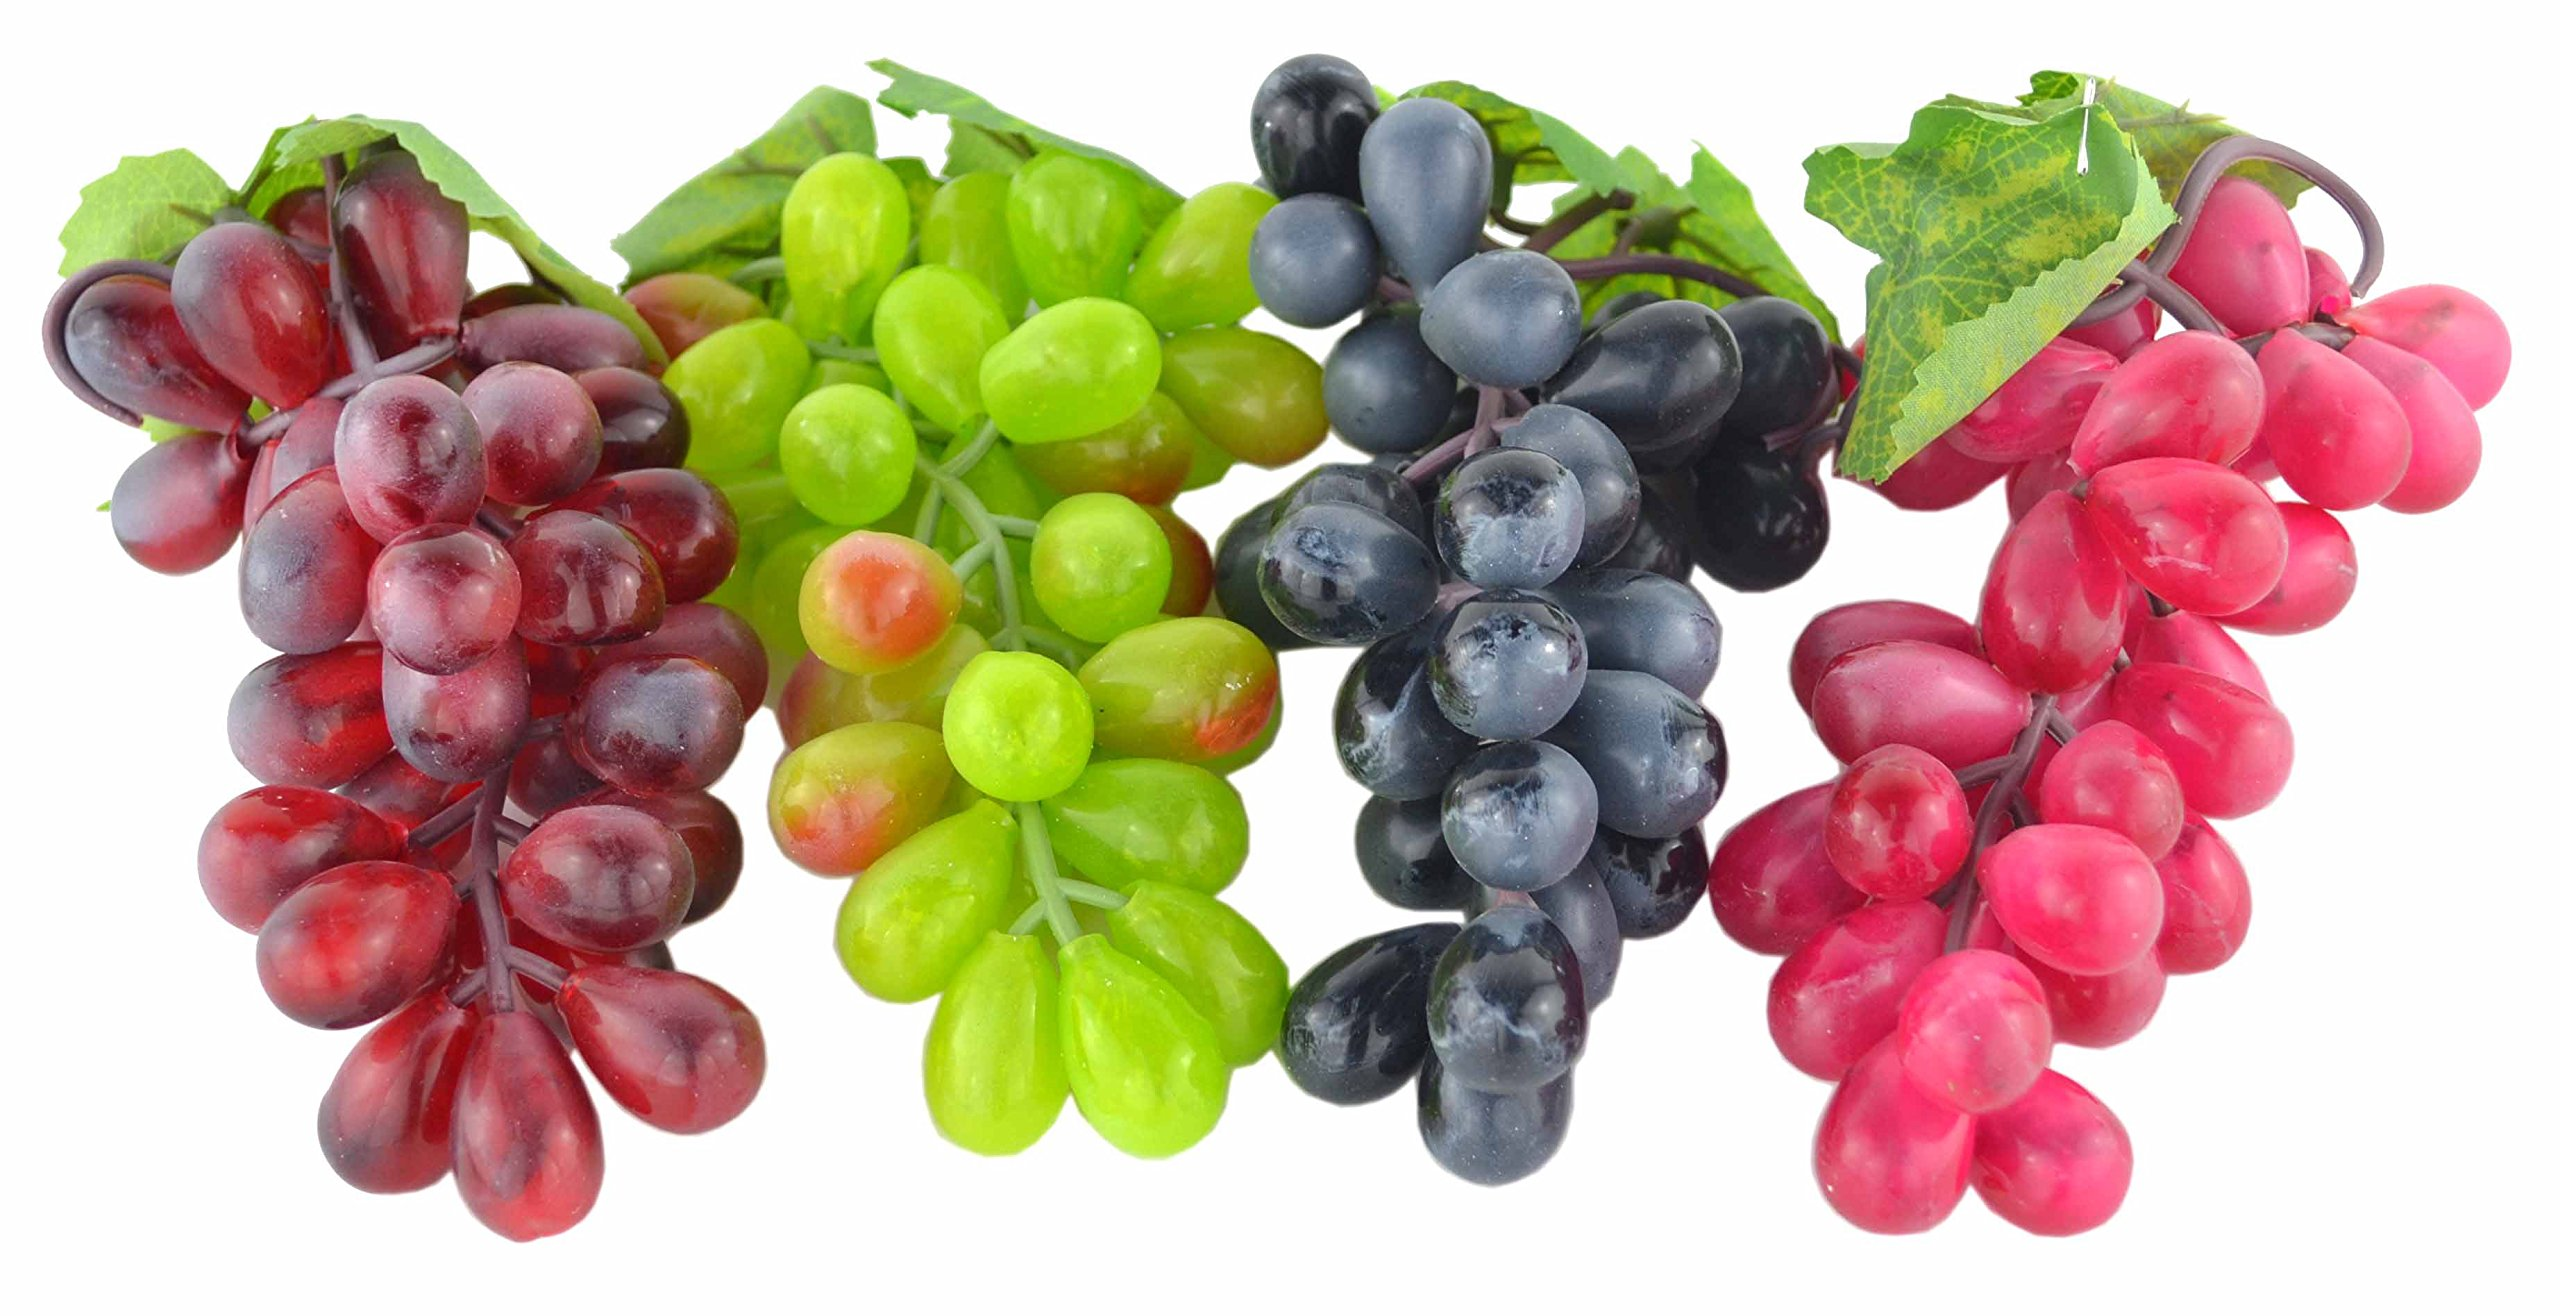 SAMYO-4-Bunches-of-Artificial-BlackRed-Green-and-Purple-Grapes-Fake-Fruit-Home-House-Kitchen-Party-Wedding-Decoration-Photography-4-Colors